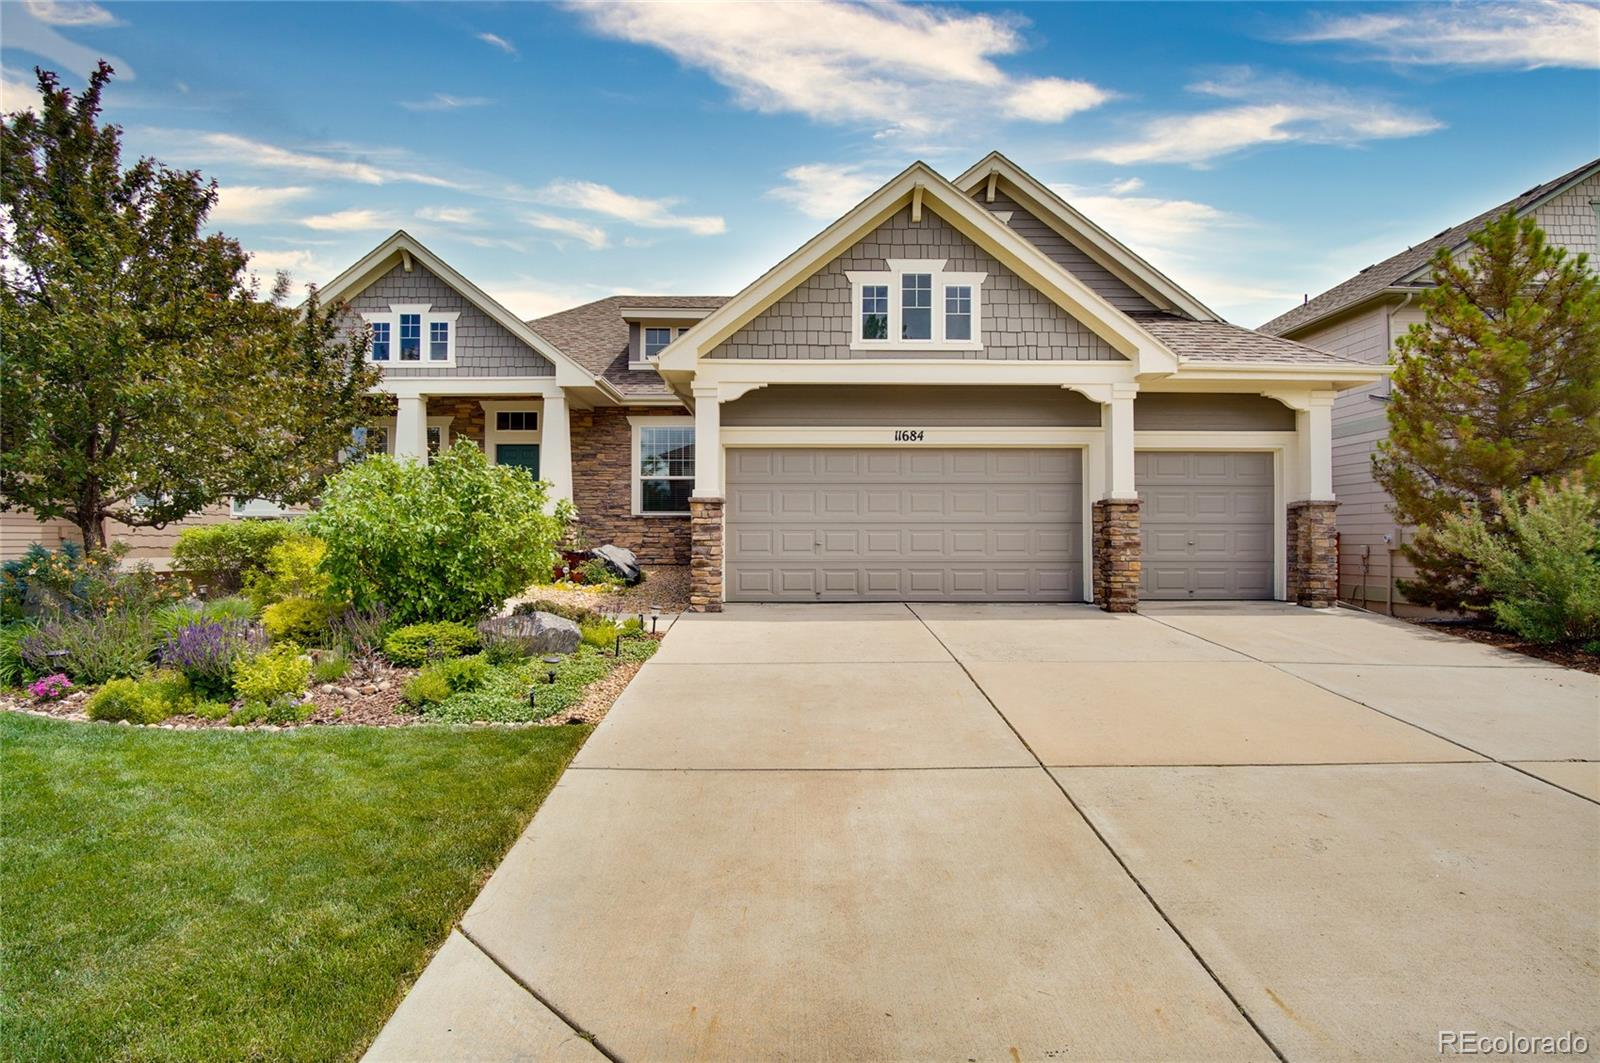 11684 S Breeze Grass Way Property Photo - Parker, CO real estate listing